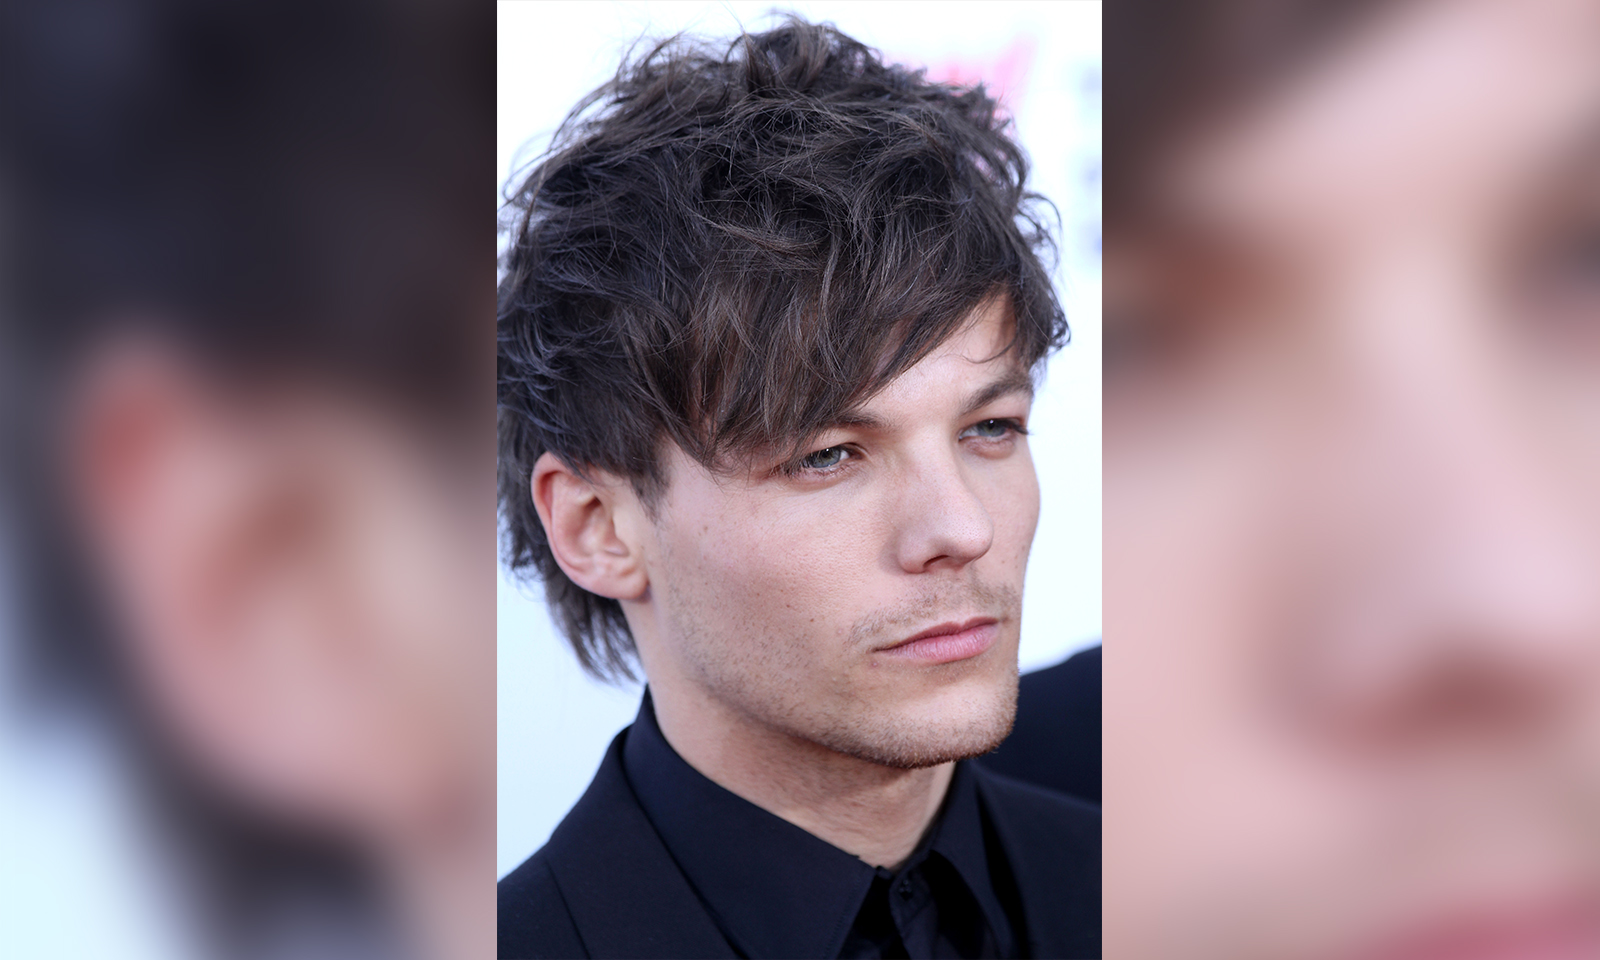 Louis Tomlinson won't do BBC Breakfast again after this interview